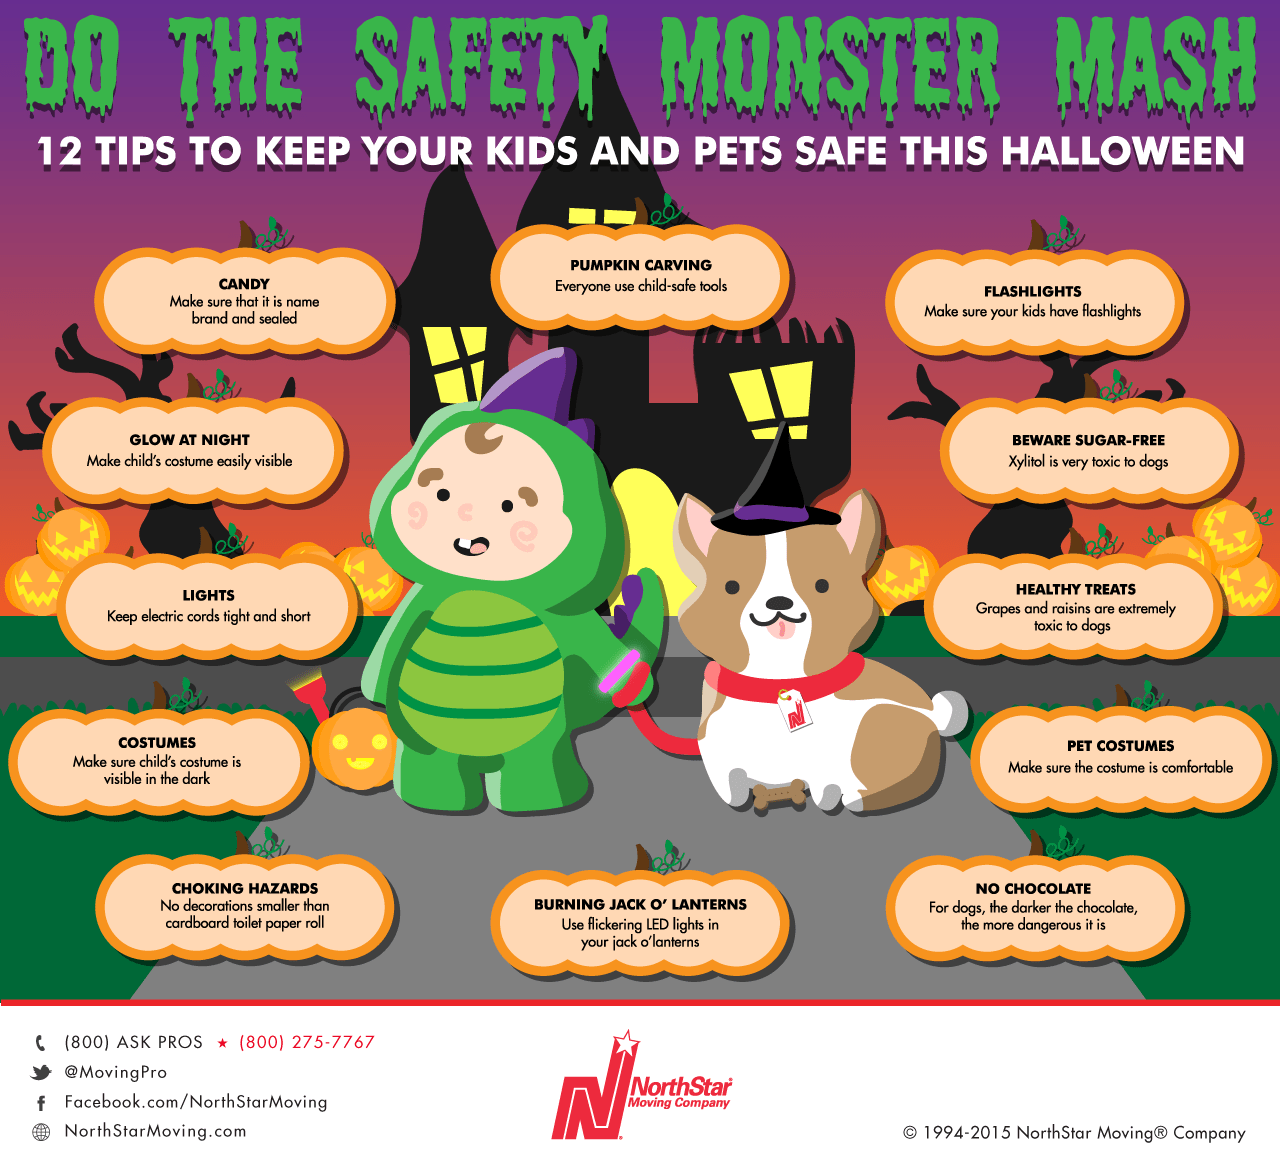 Experts share simple tips for a safe, scarefree Halloween